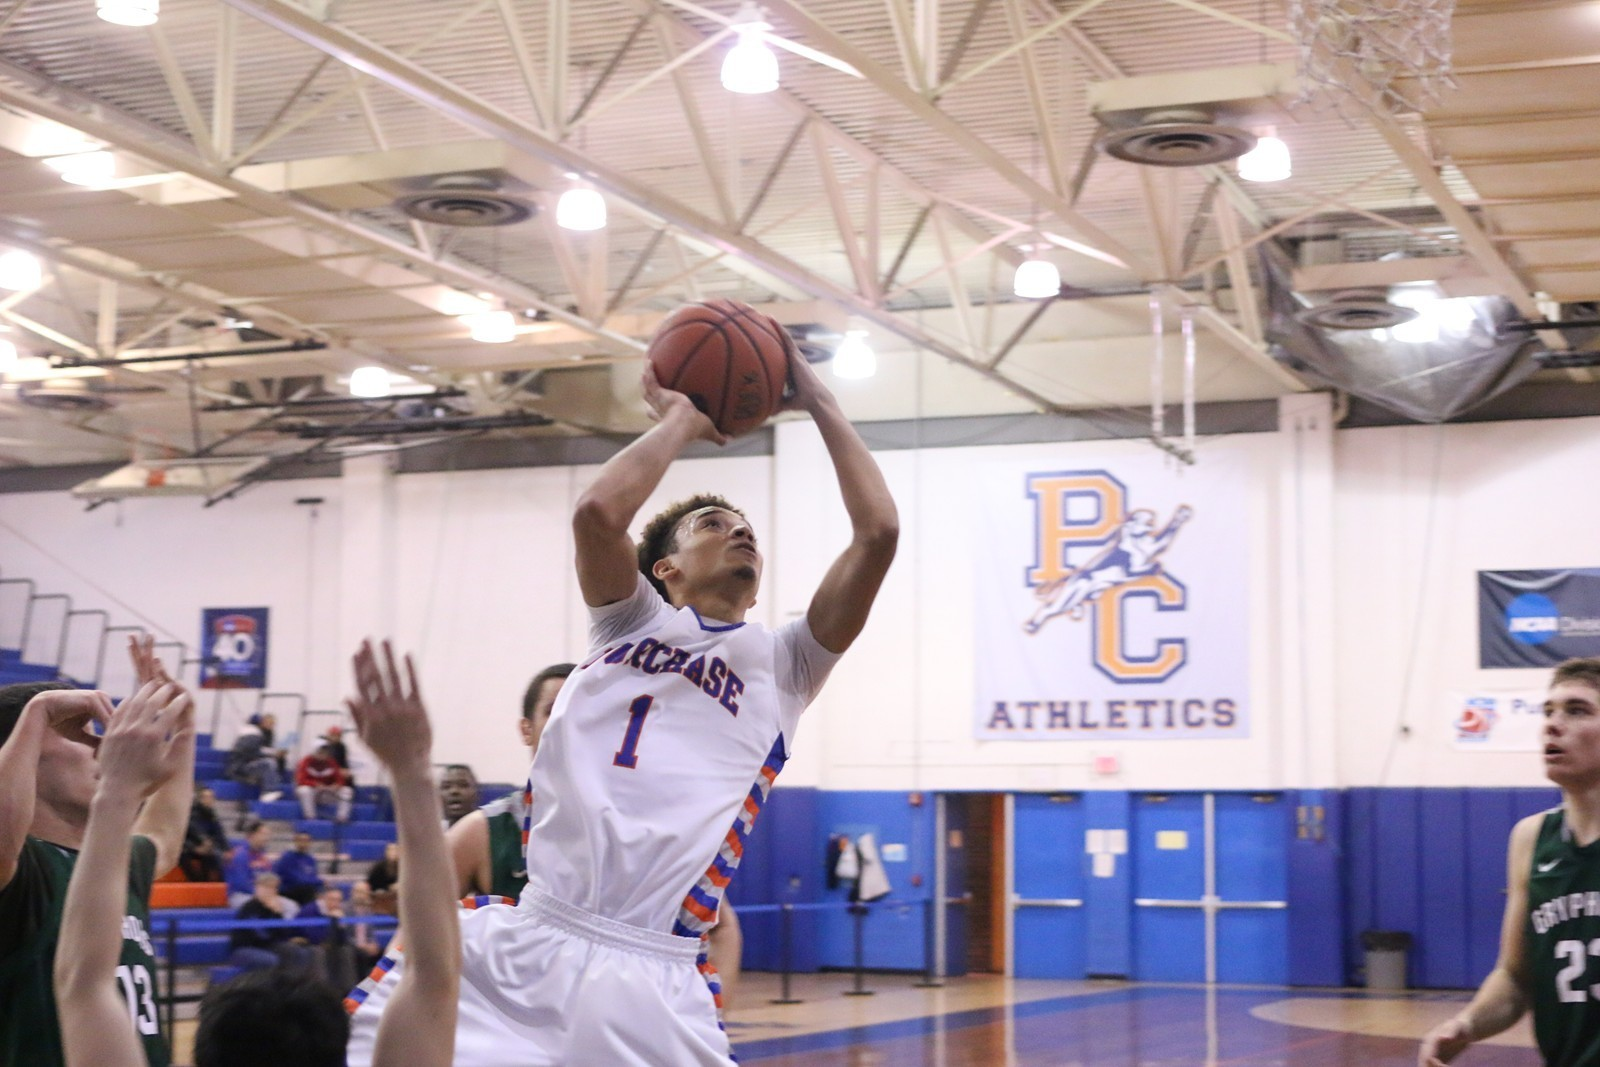 SUNY-Purchase Panthers - 2018 Schedule, Stats, Team ...